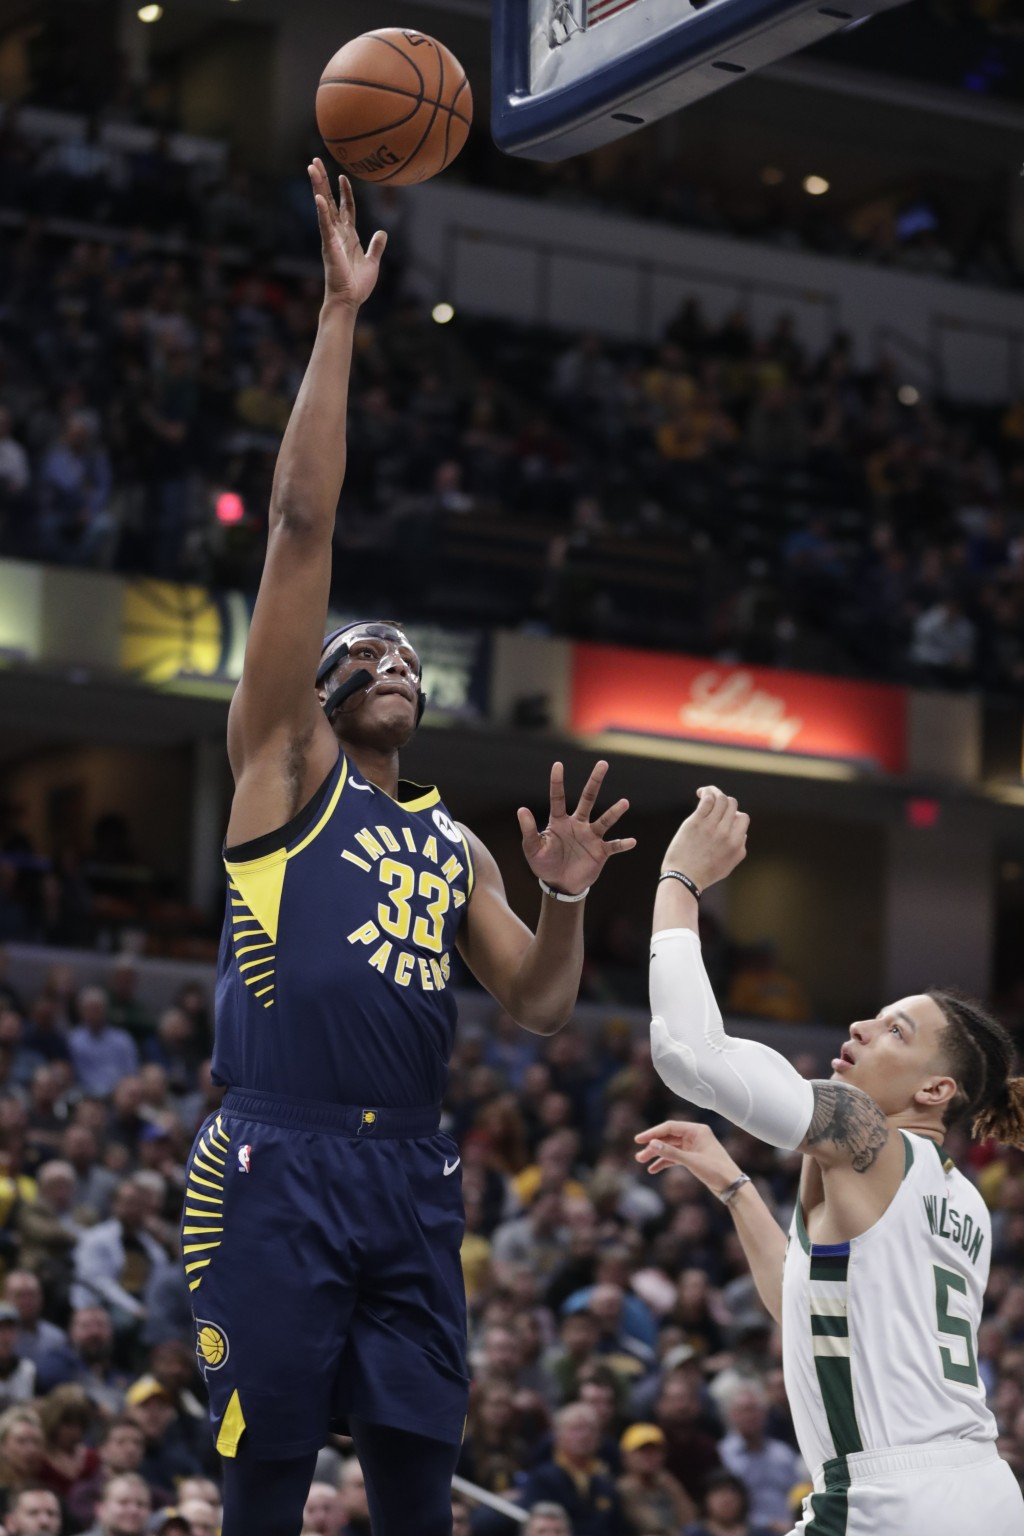 Indiana Pacers center Myles Turner (33) shoots over Milwaukee Bucks forward D.J. Wilson (5) during the first half of an NBA basketball game in Indiana